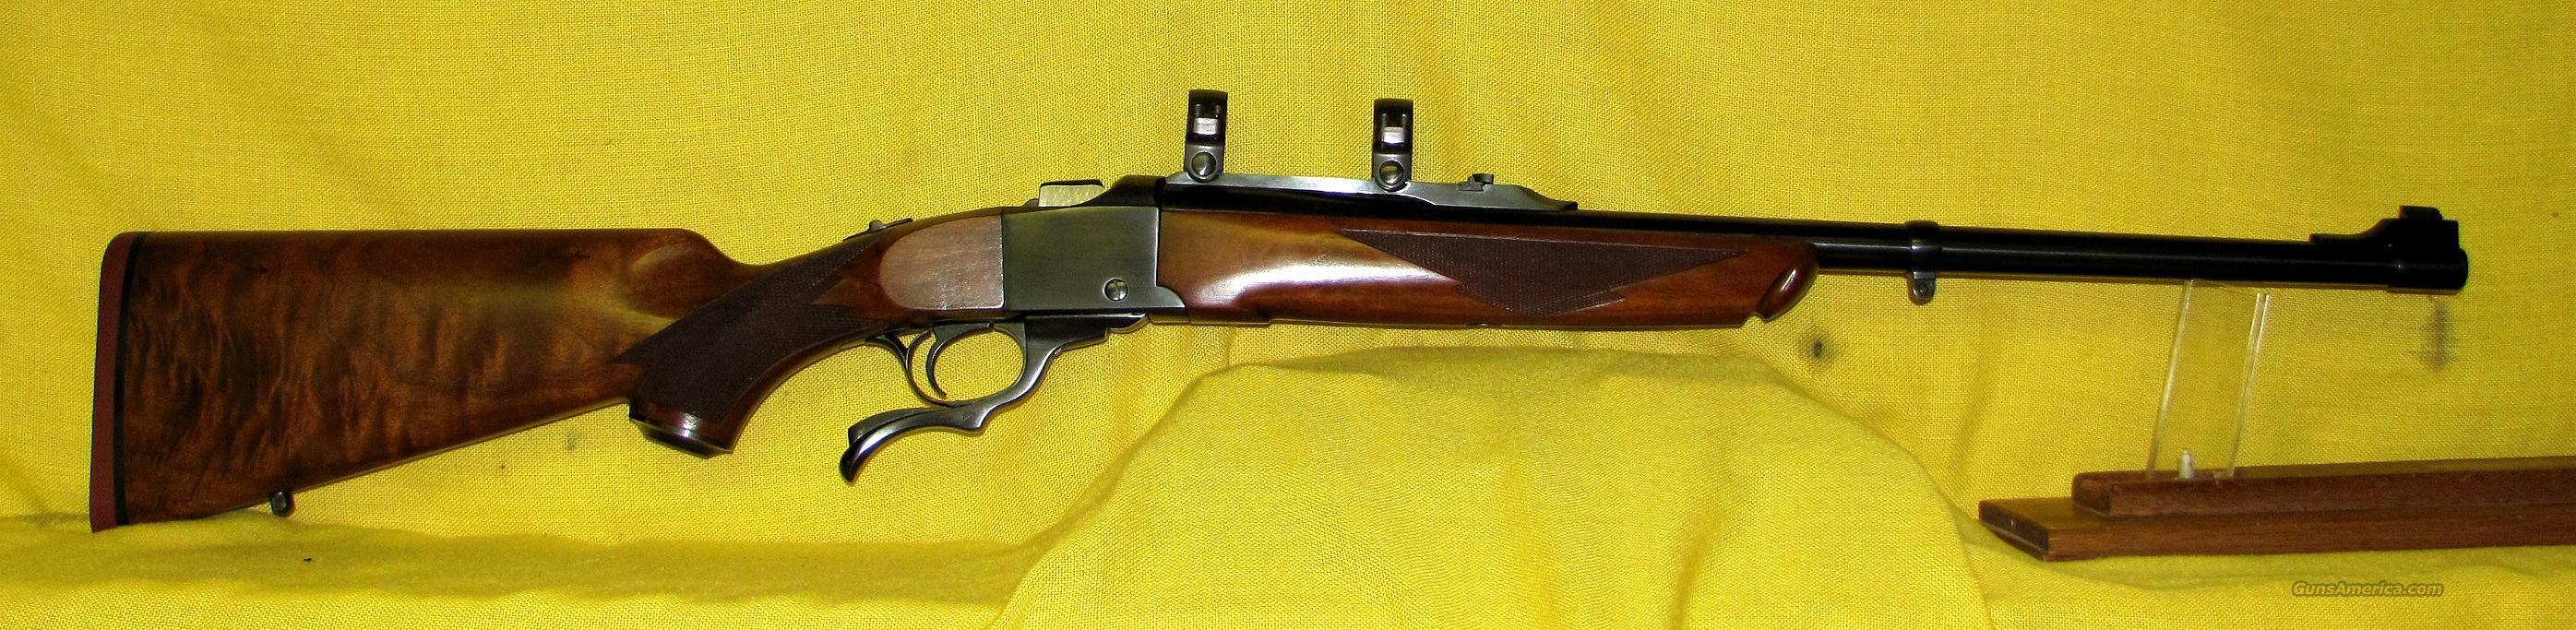 "RUGER NO.1 .45/70 22"" BARREL  Guns > Rifles > Ruger Rifles > #1 Type"